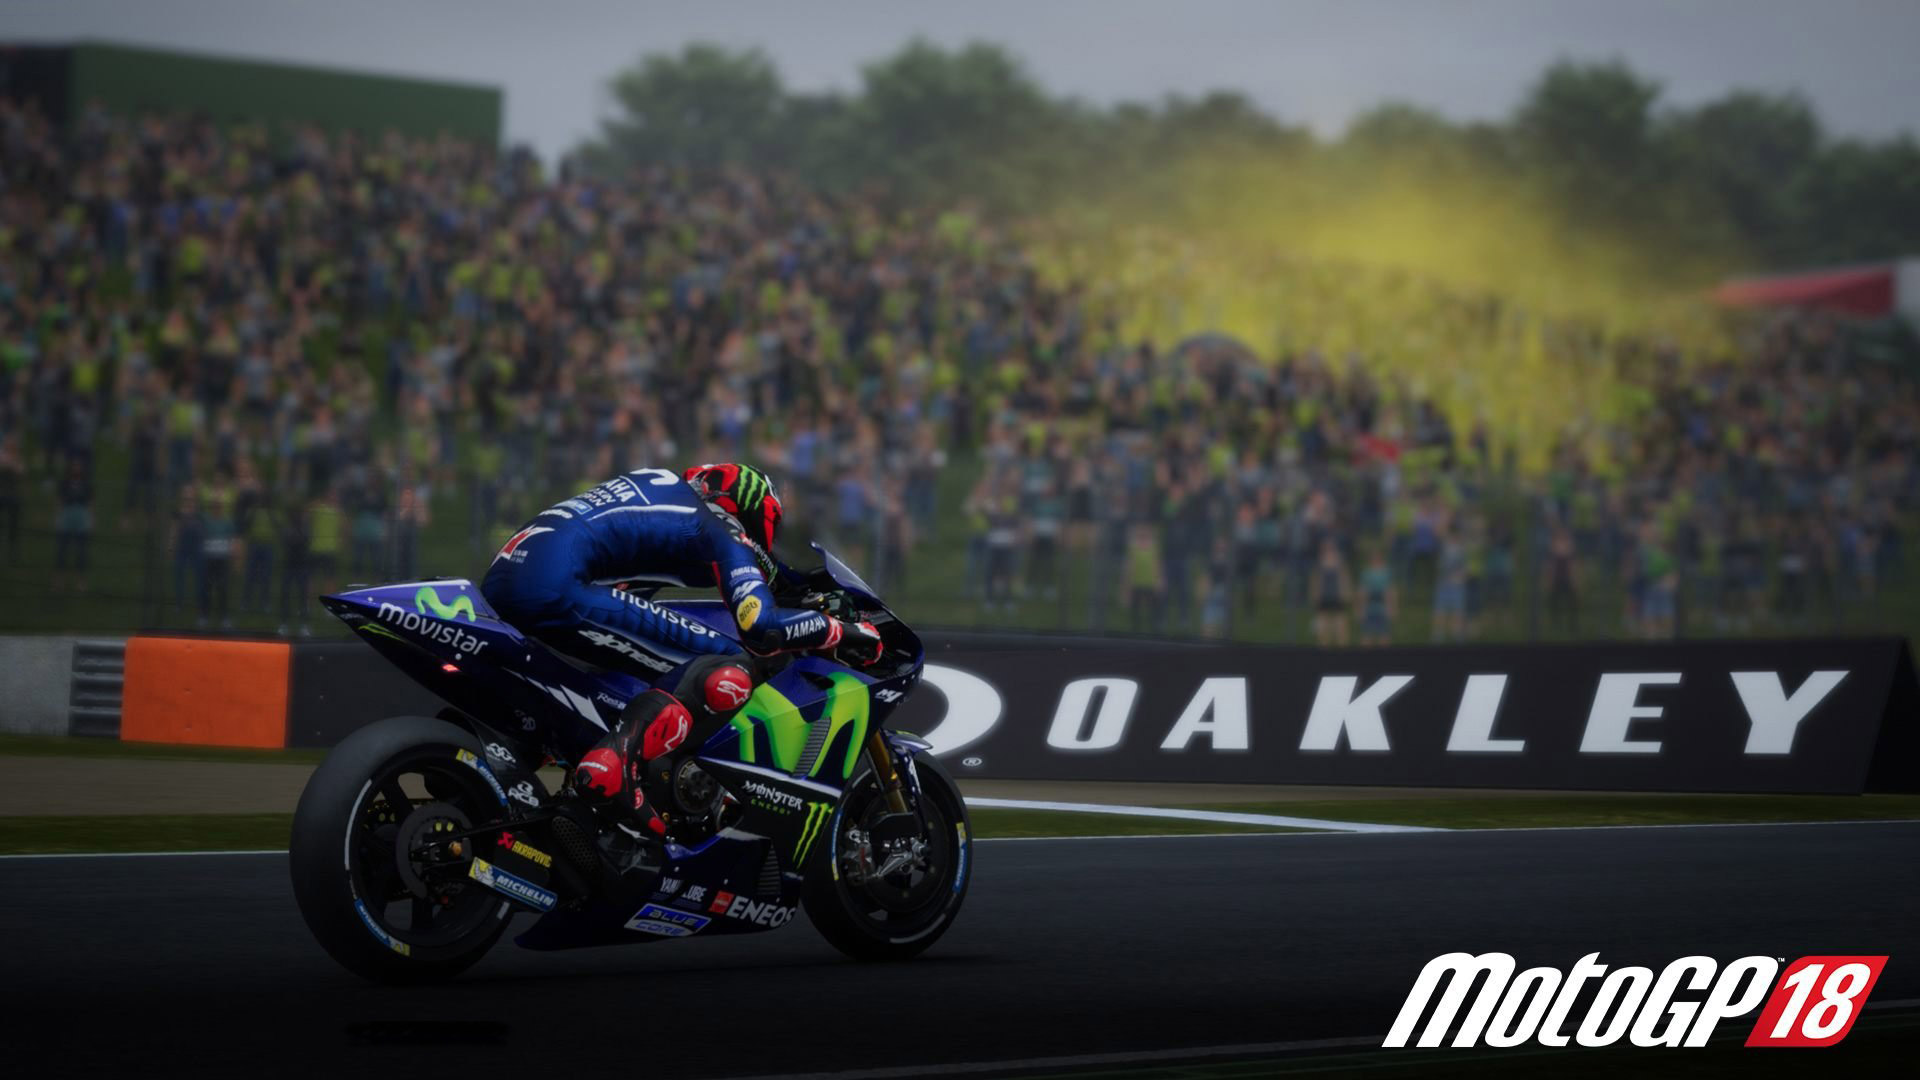 Free MotoGP 18 Wallpaper in 1920x1080